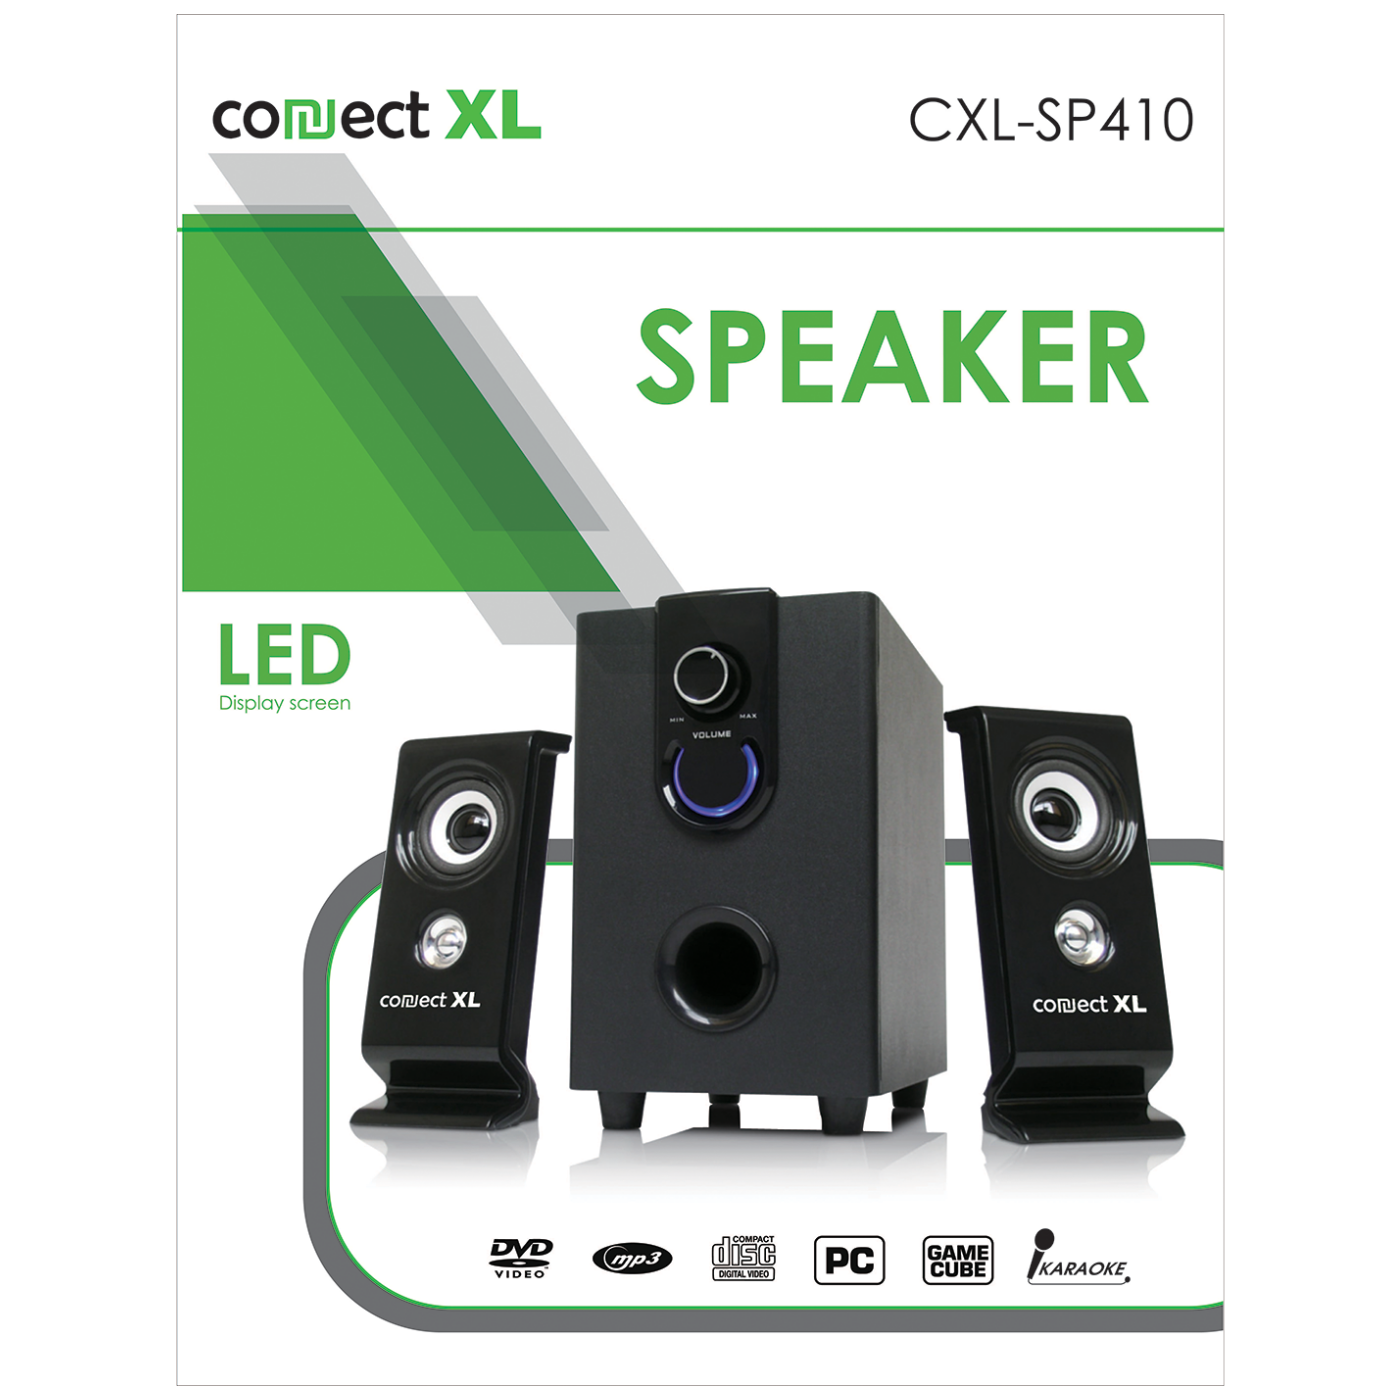 Connect XL - CXL-SP410